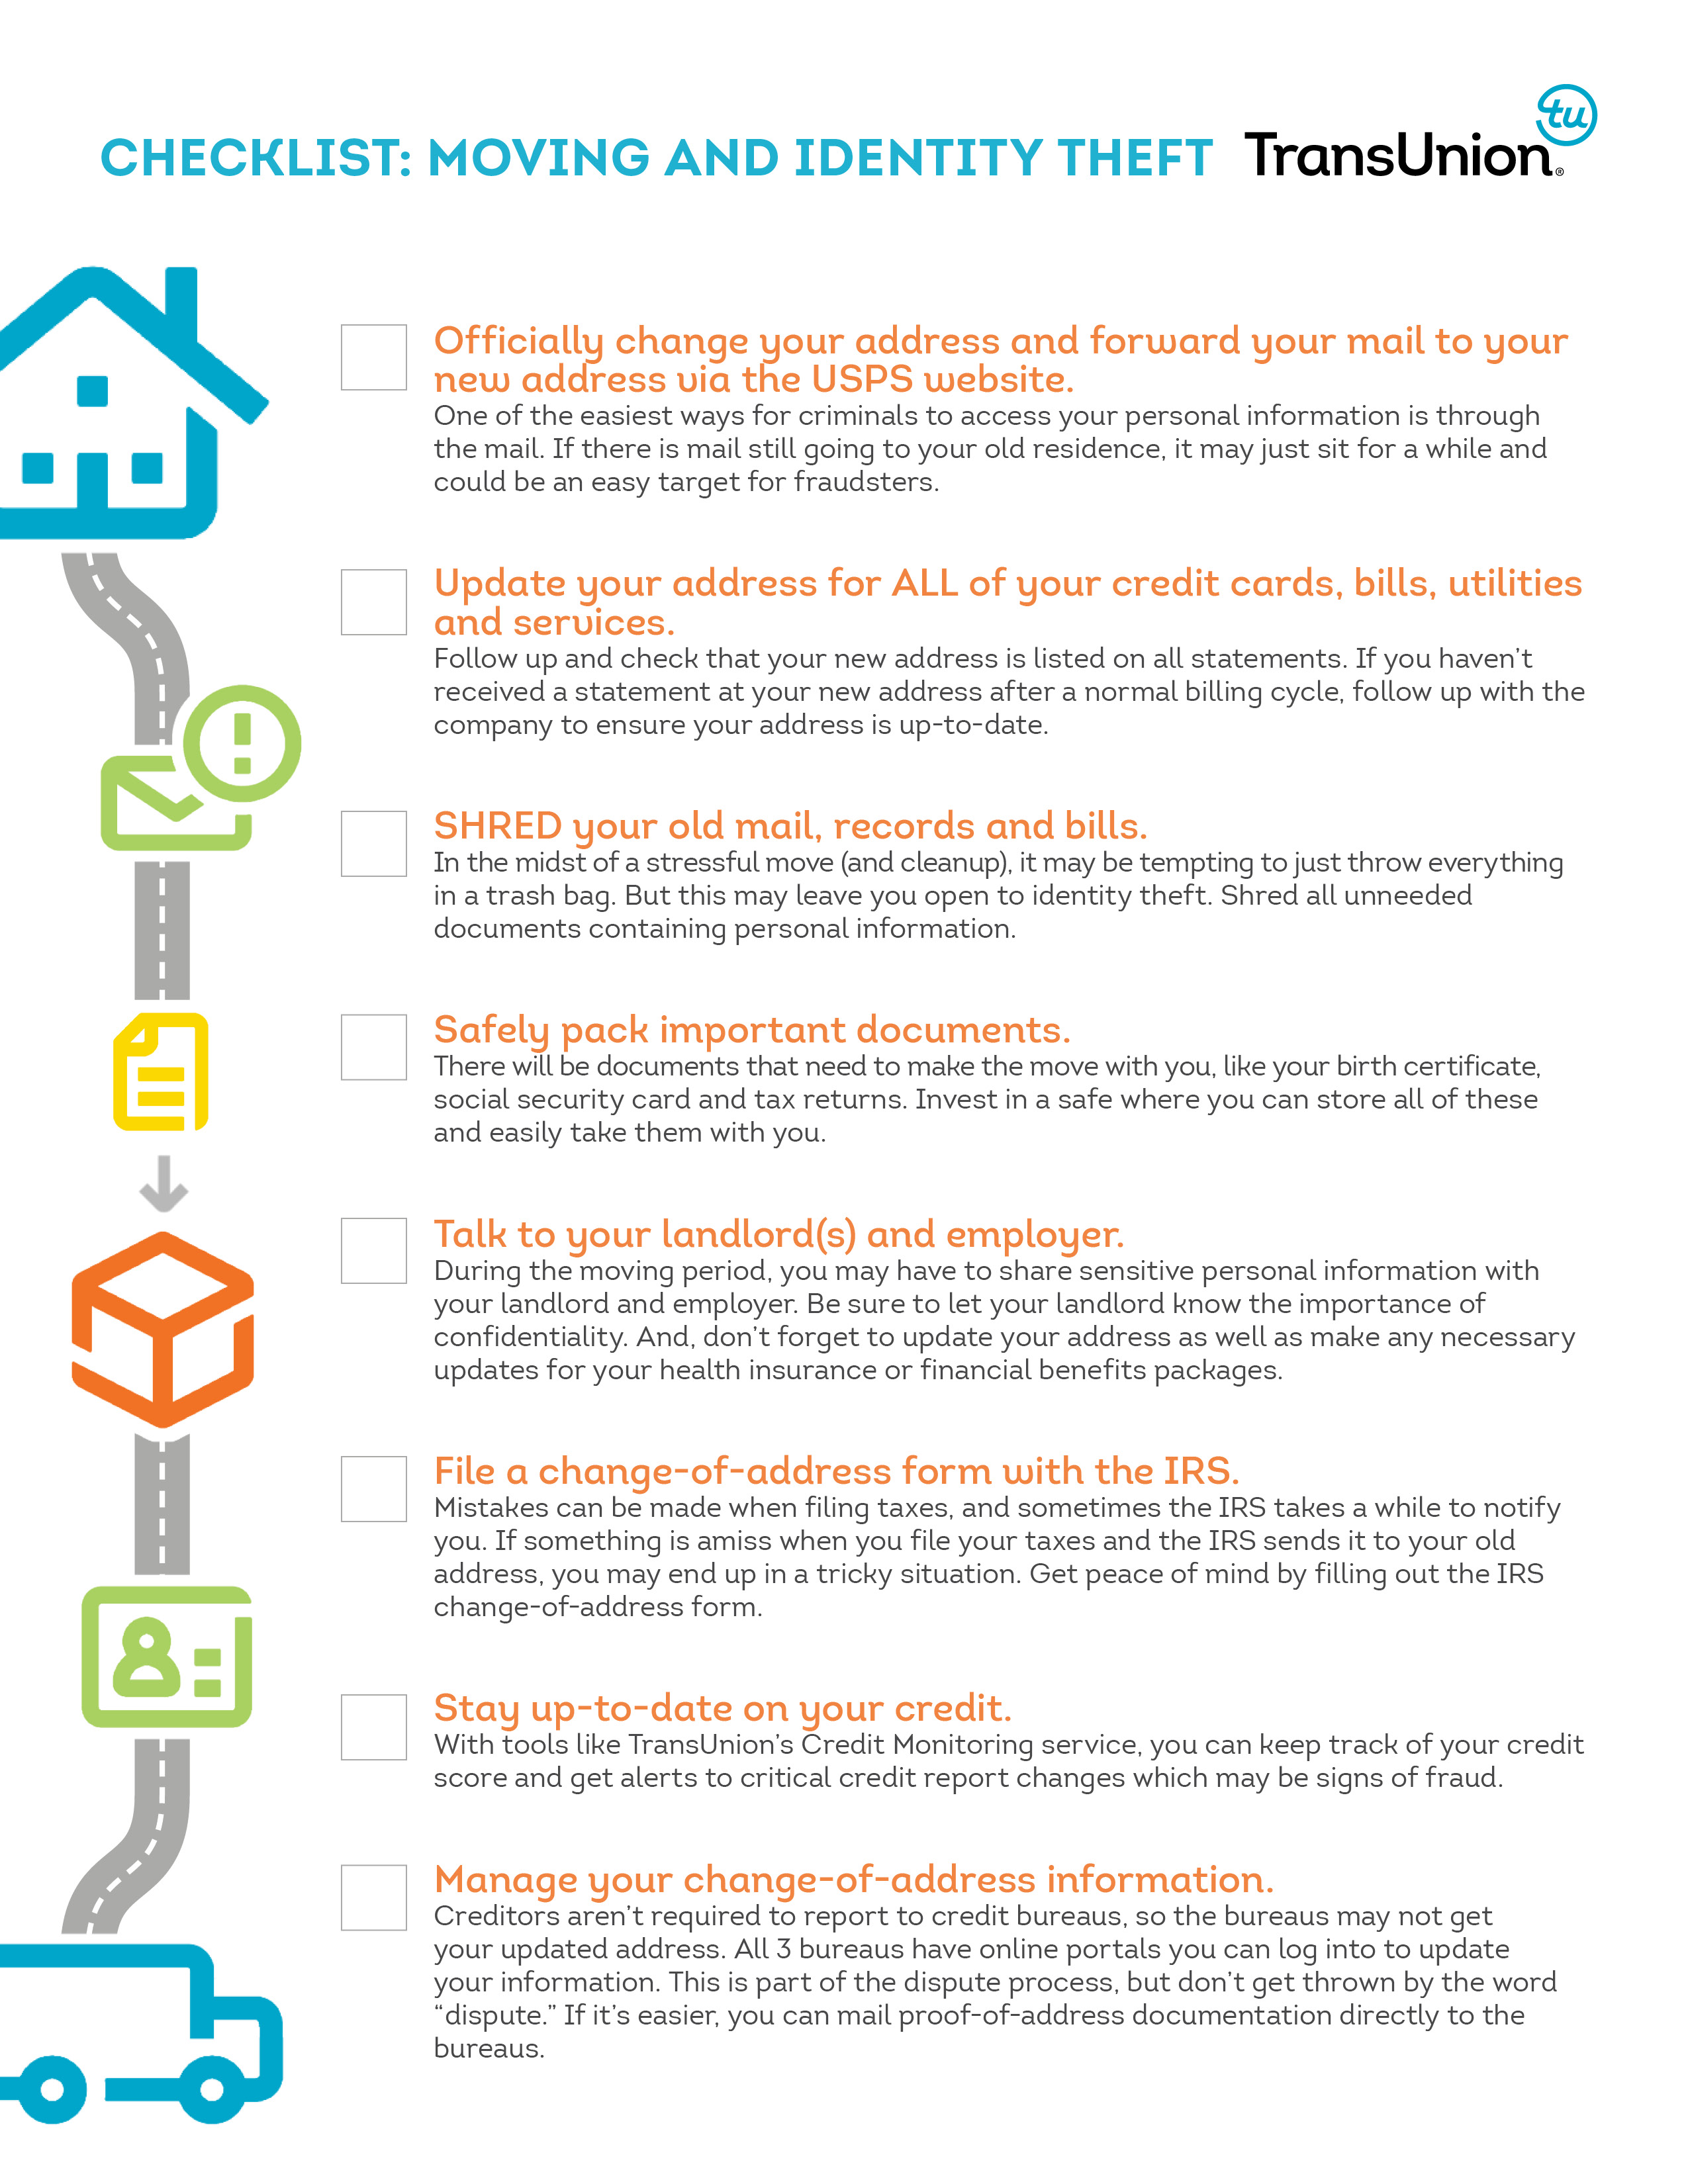 Protect Yourself From Id Theft With Transunion S Moving Checklist